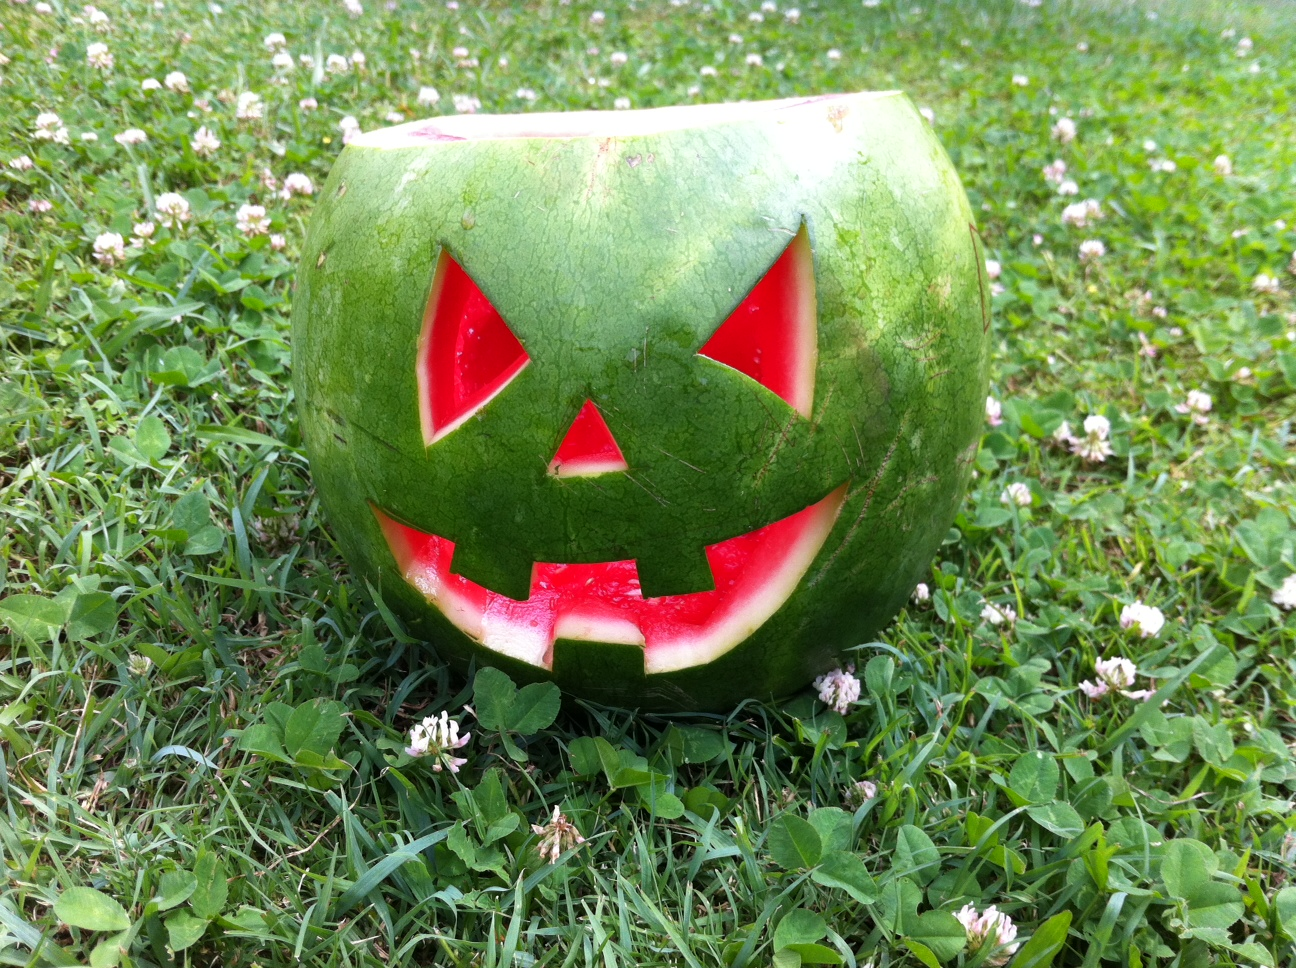 Carve a watermelon instead of pumpkin this halloween